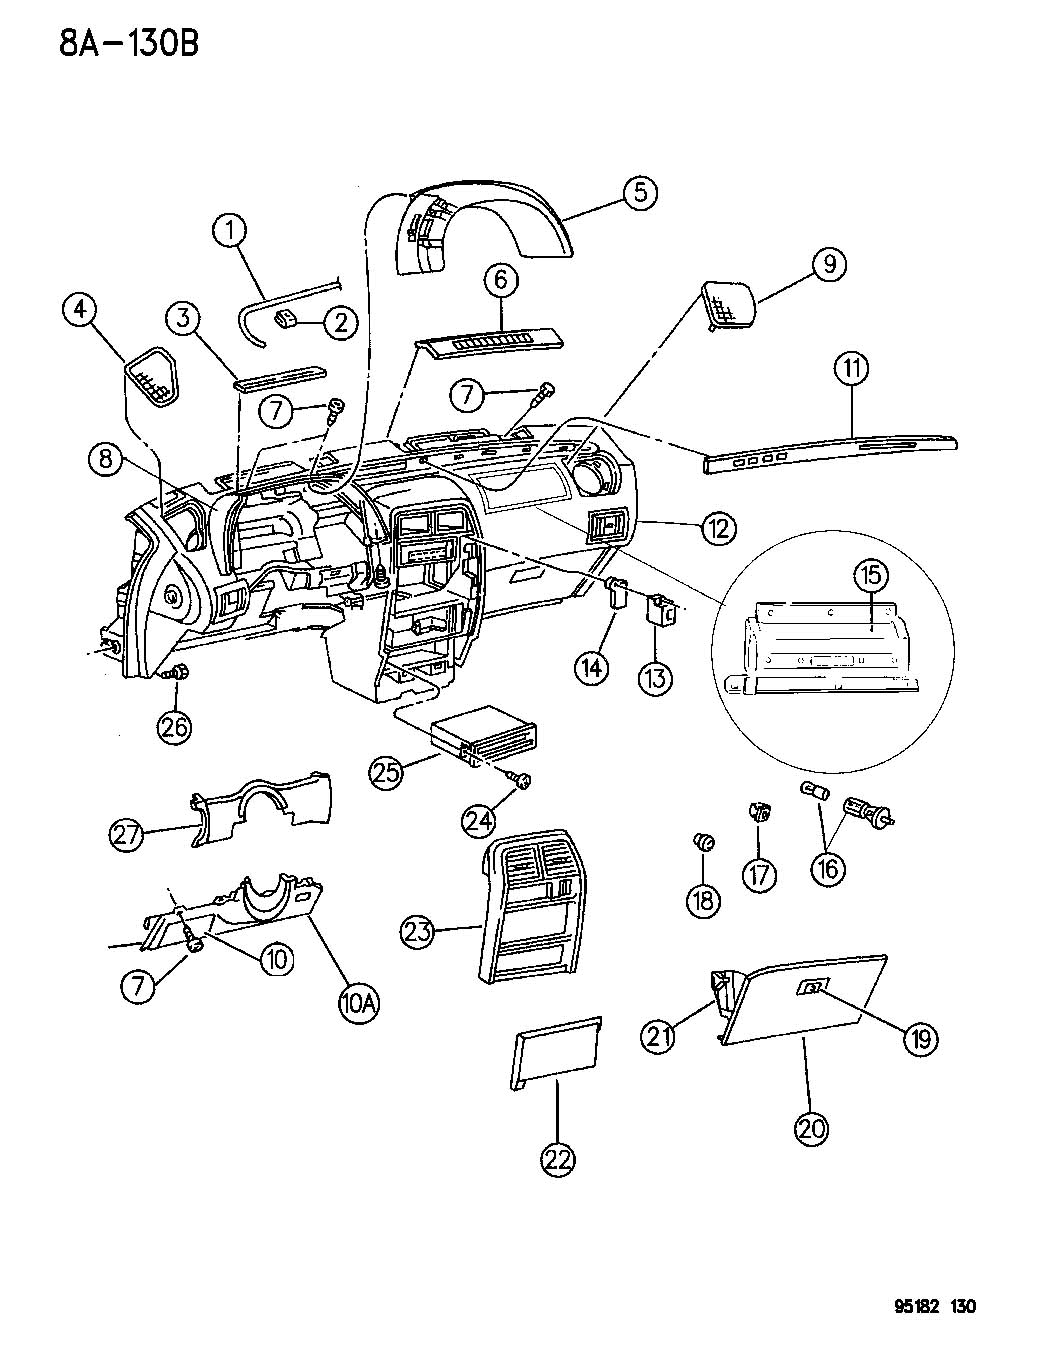 1995 Chrysler Lebaron Radio Wiring Diagram